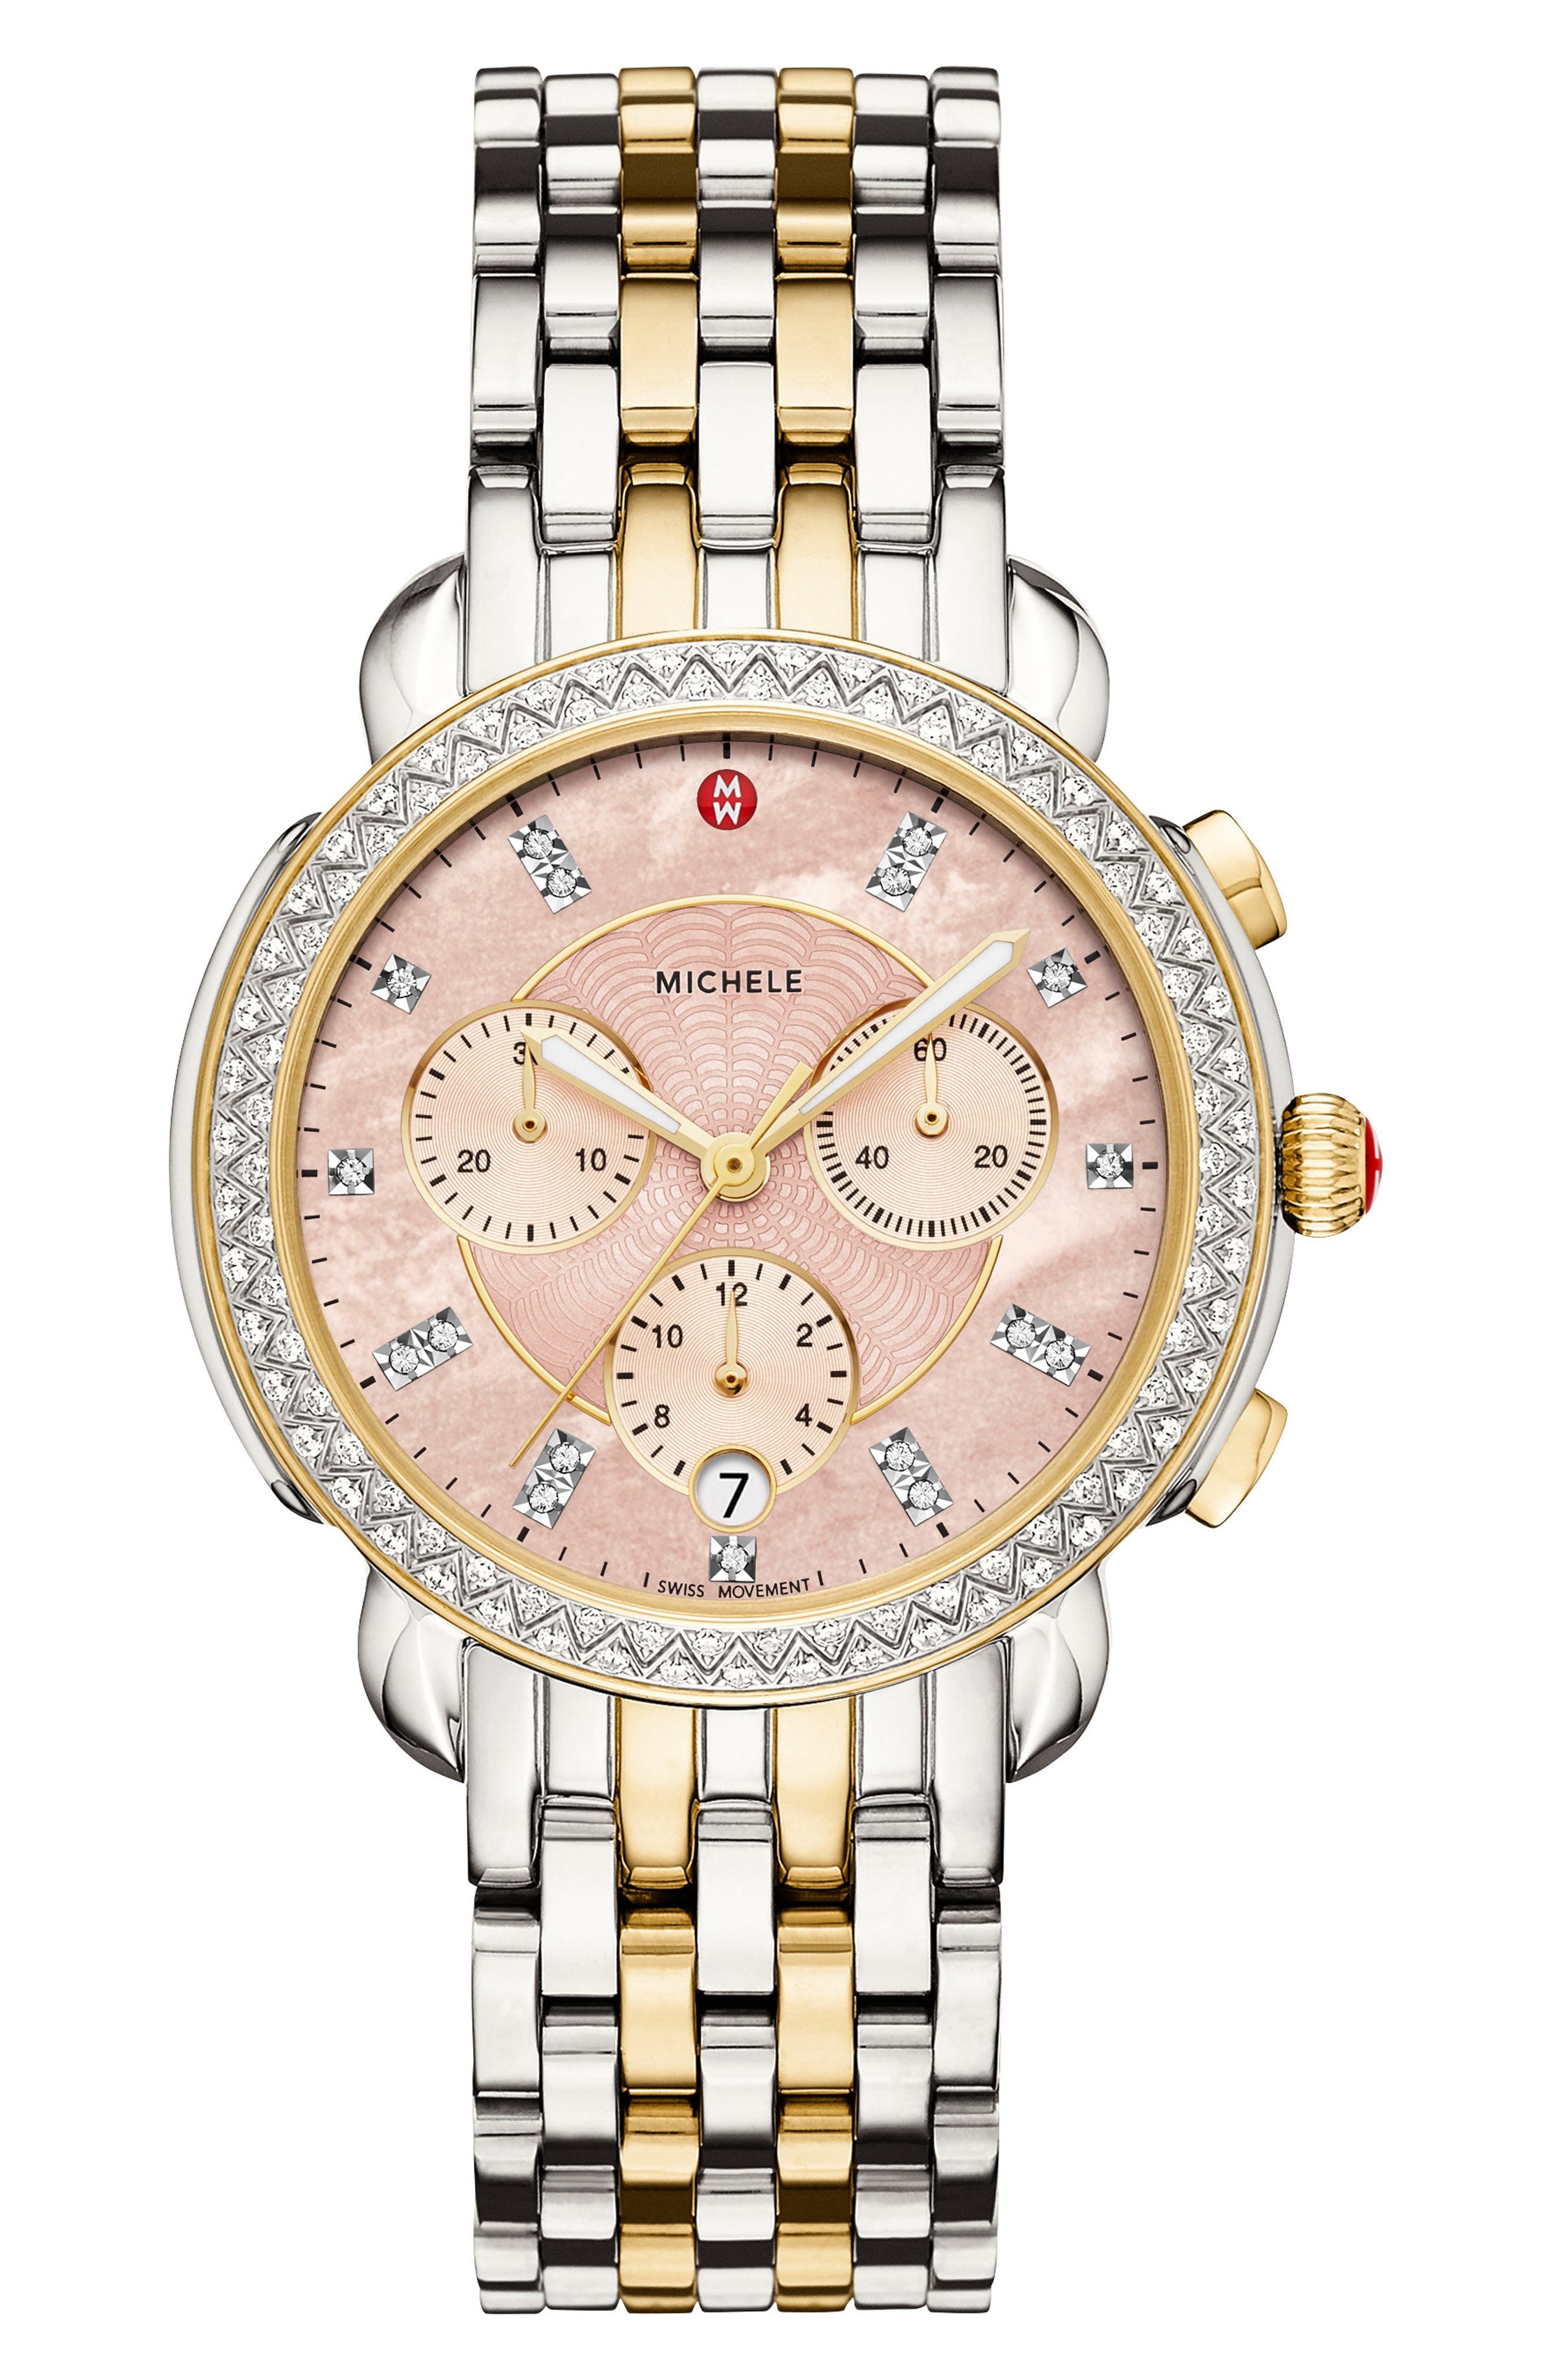 MICHELE, Sidney Chrono Diamond Diamond Dial Watch Case, 38mm, Alternate thumbnail 3, color, GOLD/ SILVER/ DESERT ROSE MOP